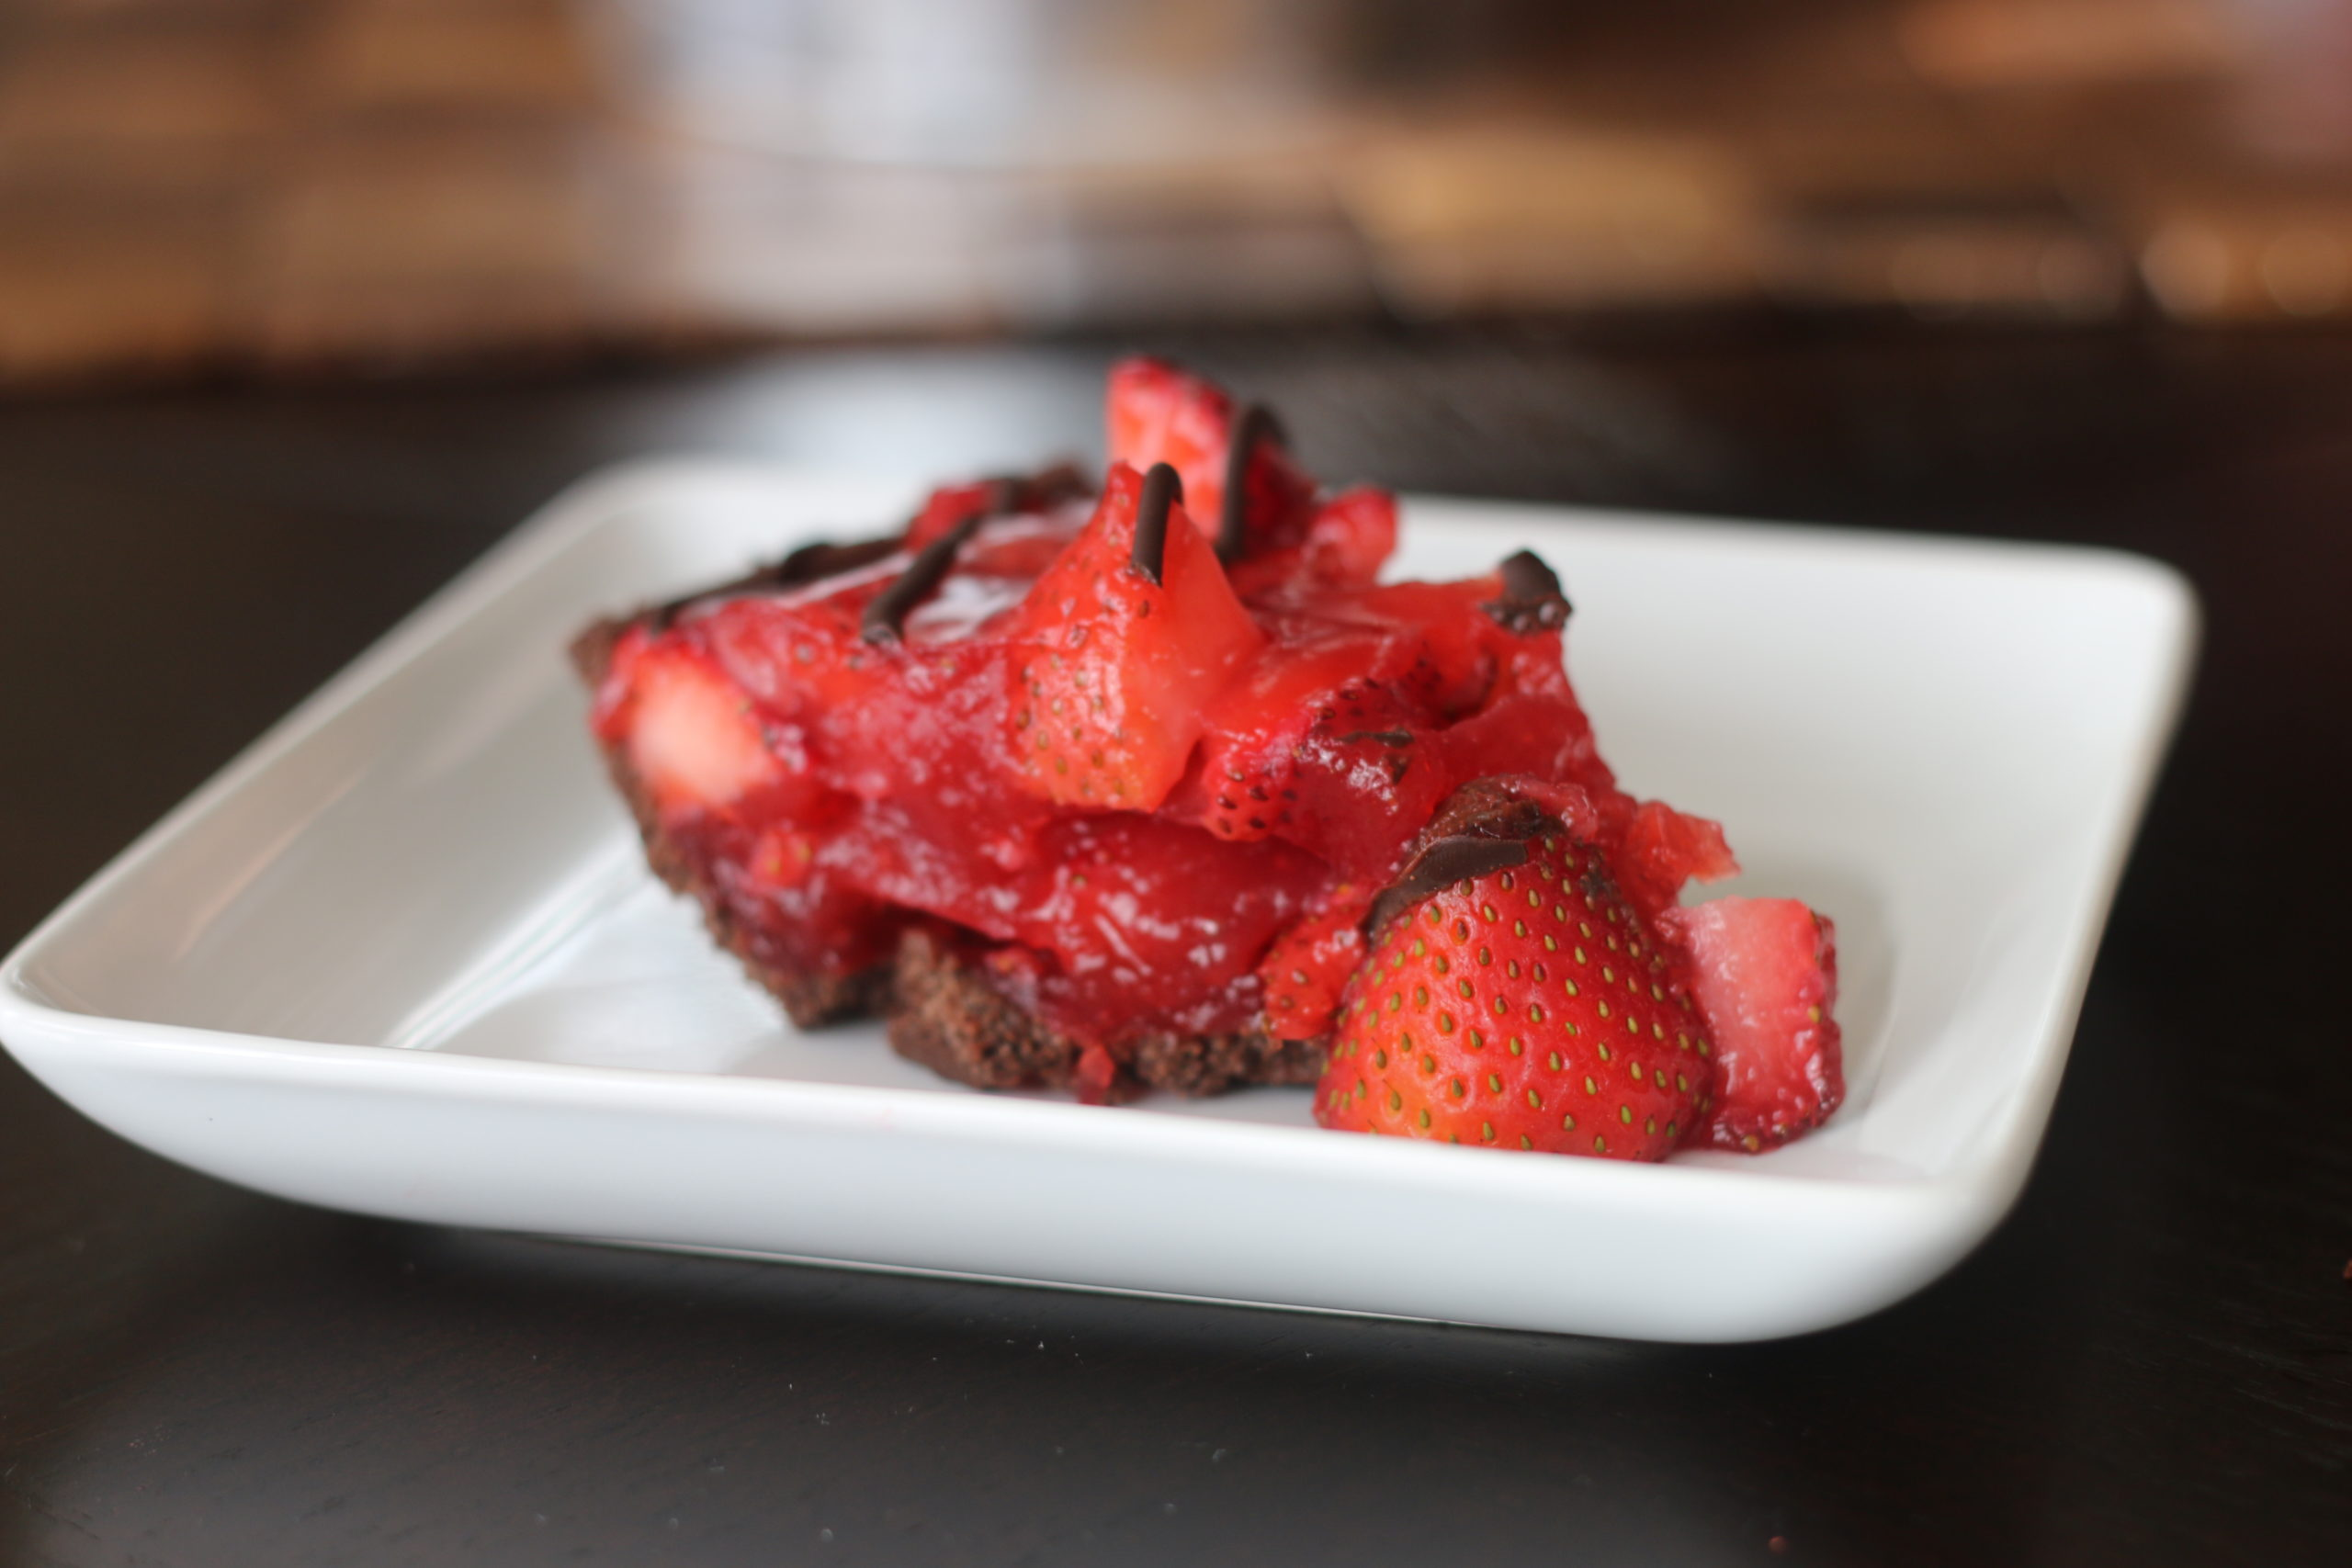 Gluten Free Chocolate Covered Strawberry Pie